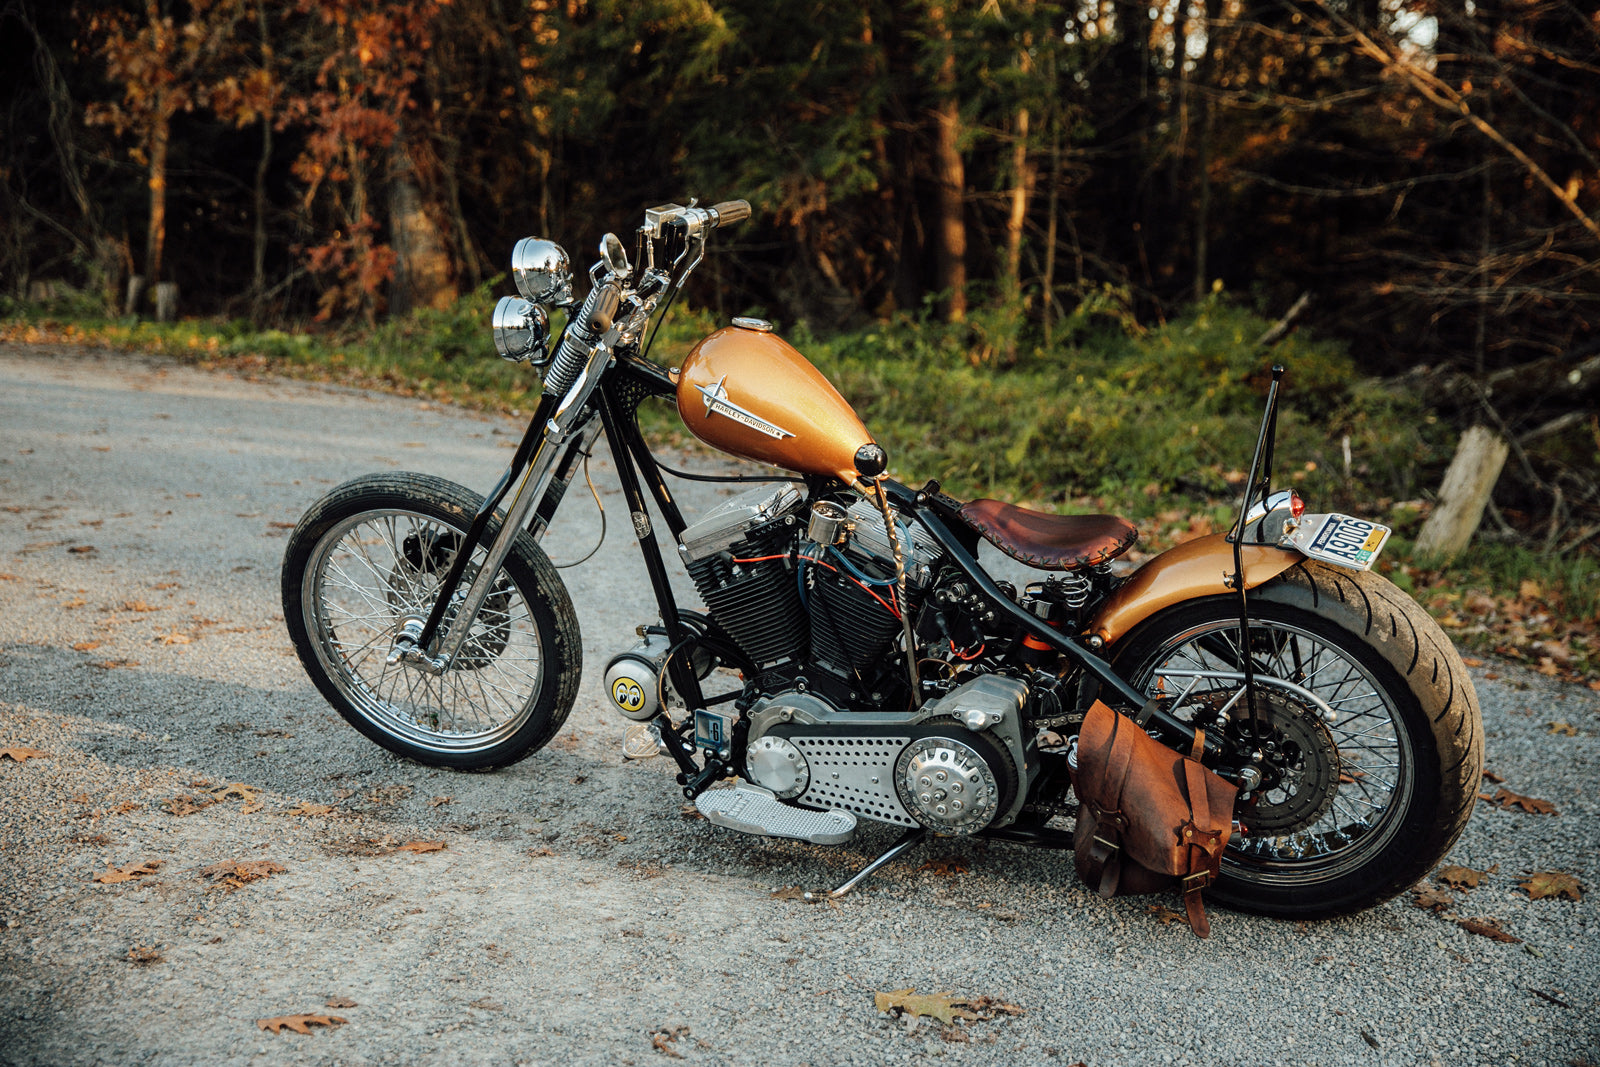 Harley-Davidson Evo Chopper Motorcycle Pittsburgh